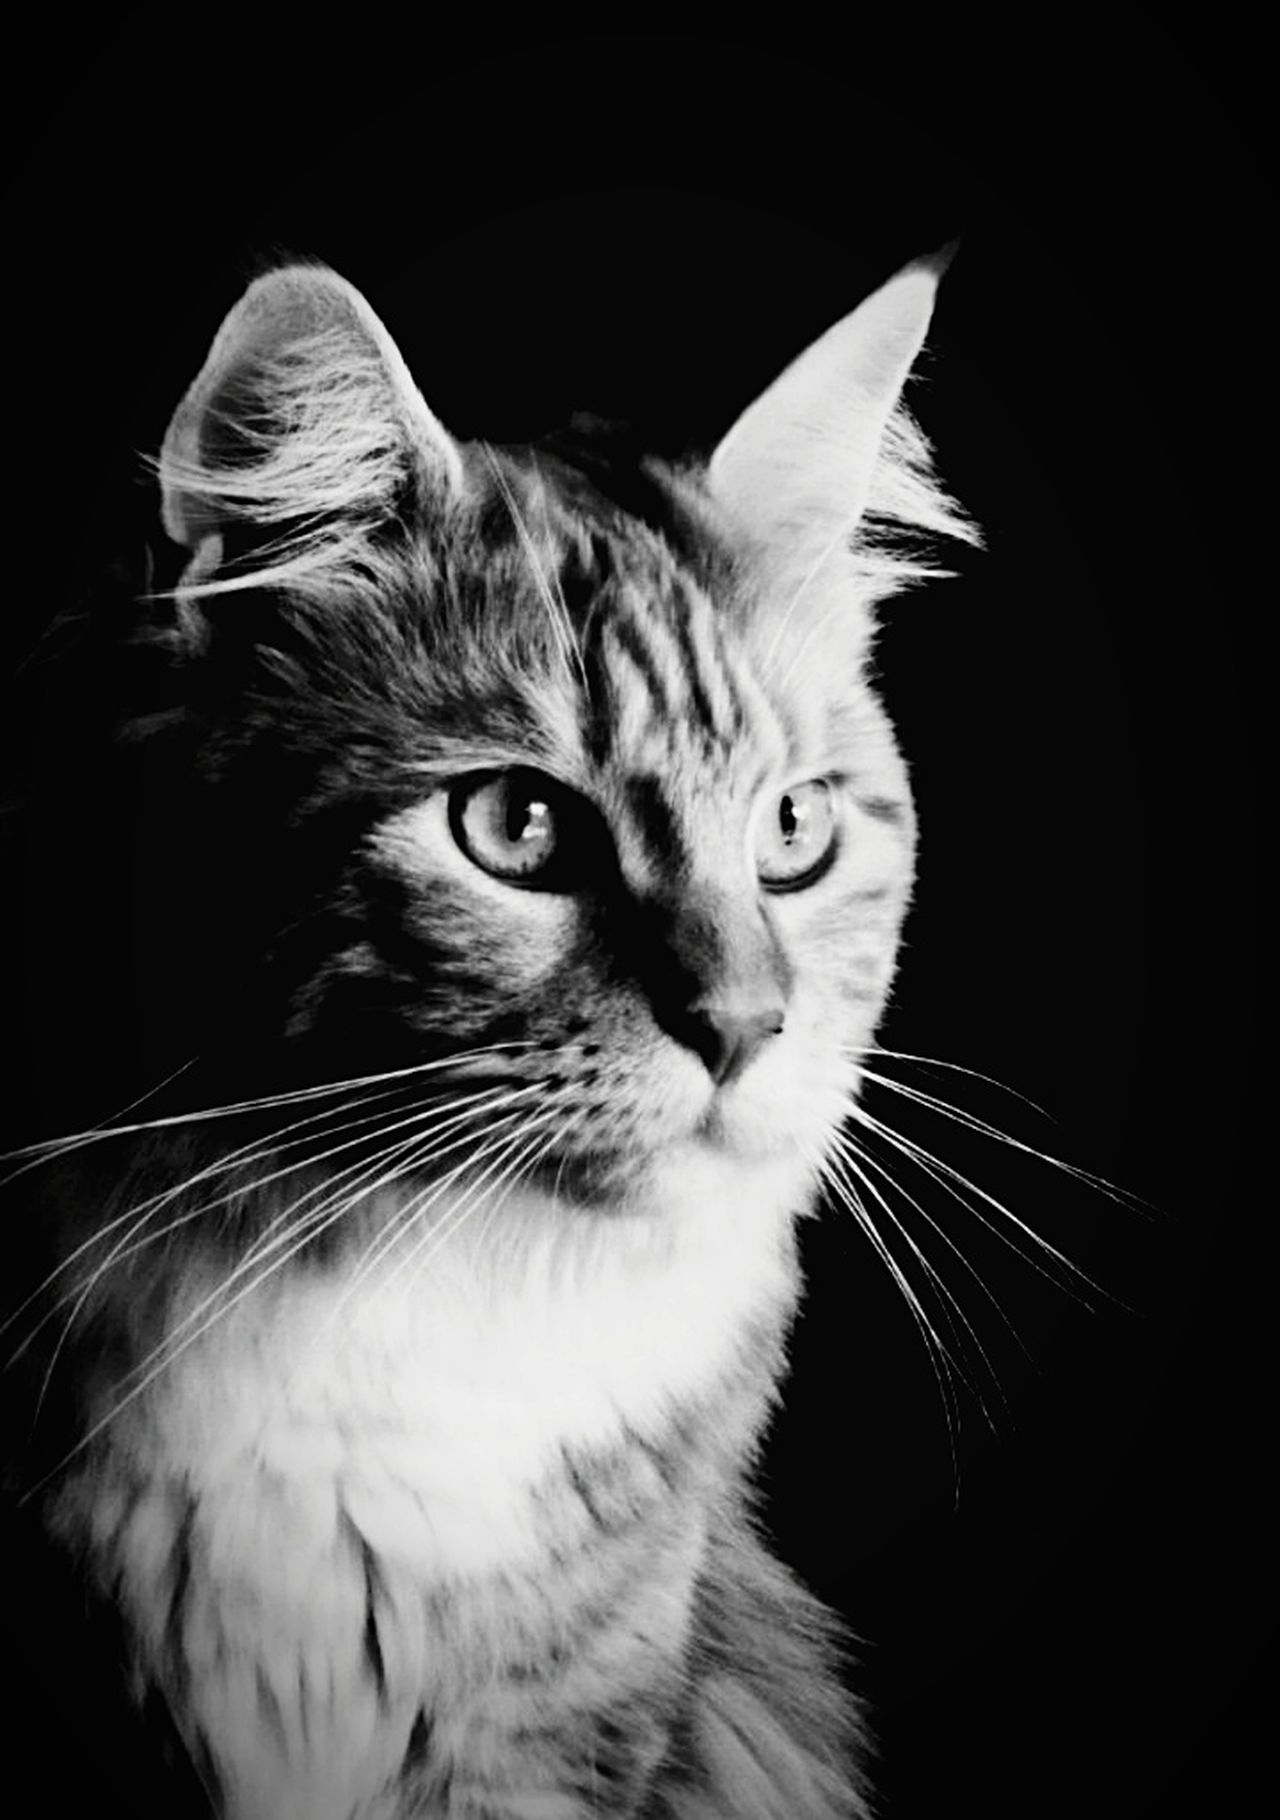 Domestic Cat Pets Feline Domestic Animals Animal Themes Whisker Black Background Animal Portrait EyeEmNewHere Noir Et Blanc Noir Et Blanc Photographie Black And White Photography Blackandwhite Mainecoonlovers Maine Coon Cat Maine Coon Hobbyphotography Hobby Hobby Photography Katze